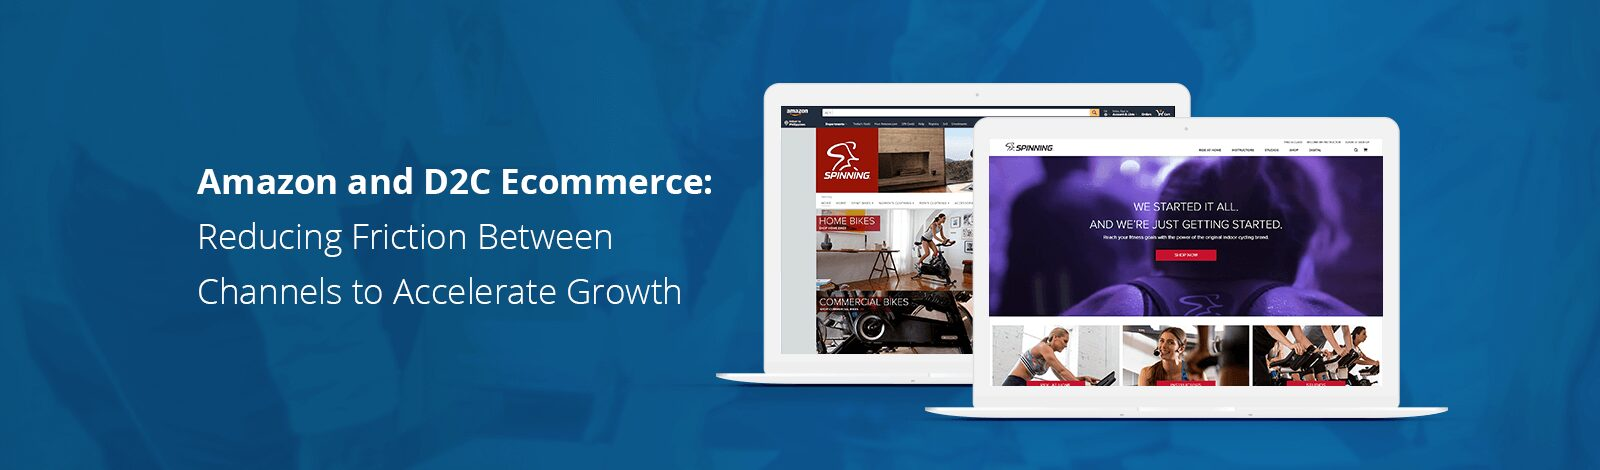 Amazon & D2C Ecommerce: Reducing Friction to Accelerate Growth